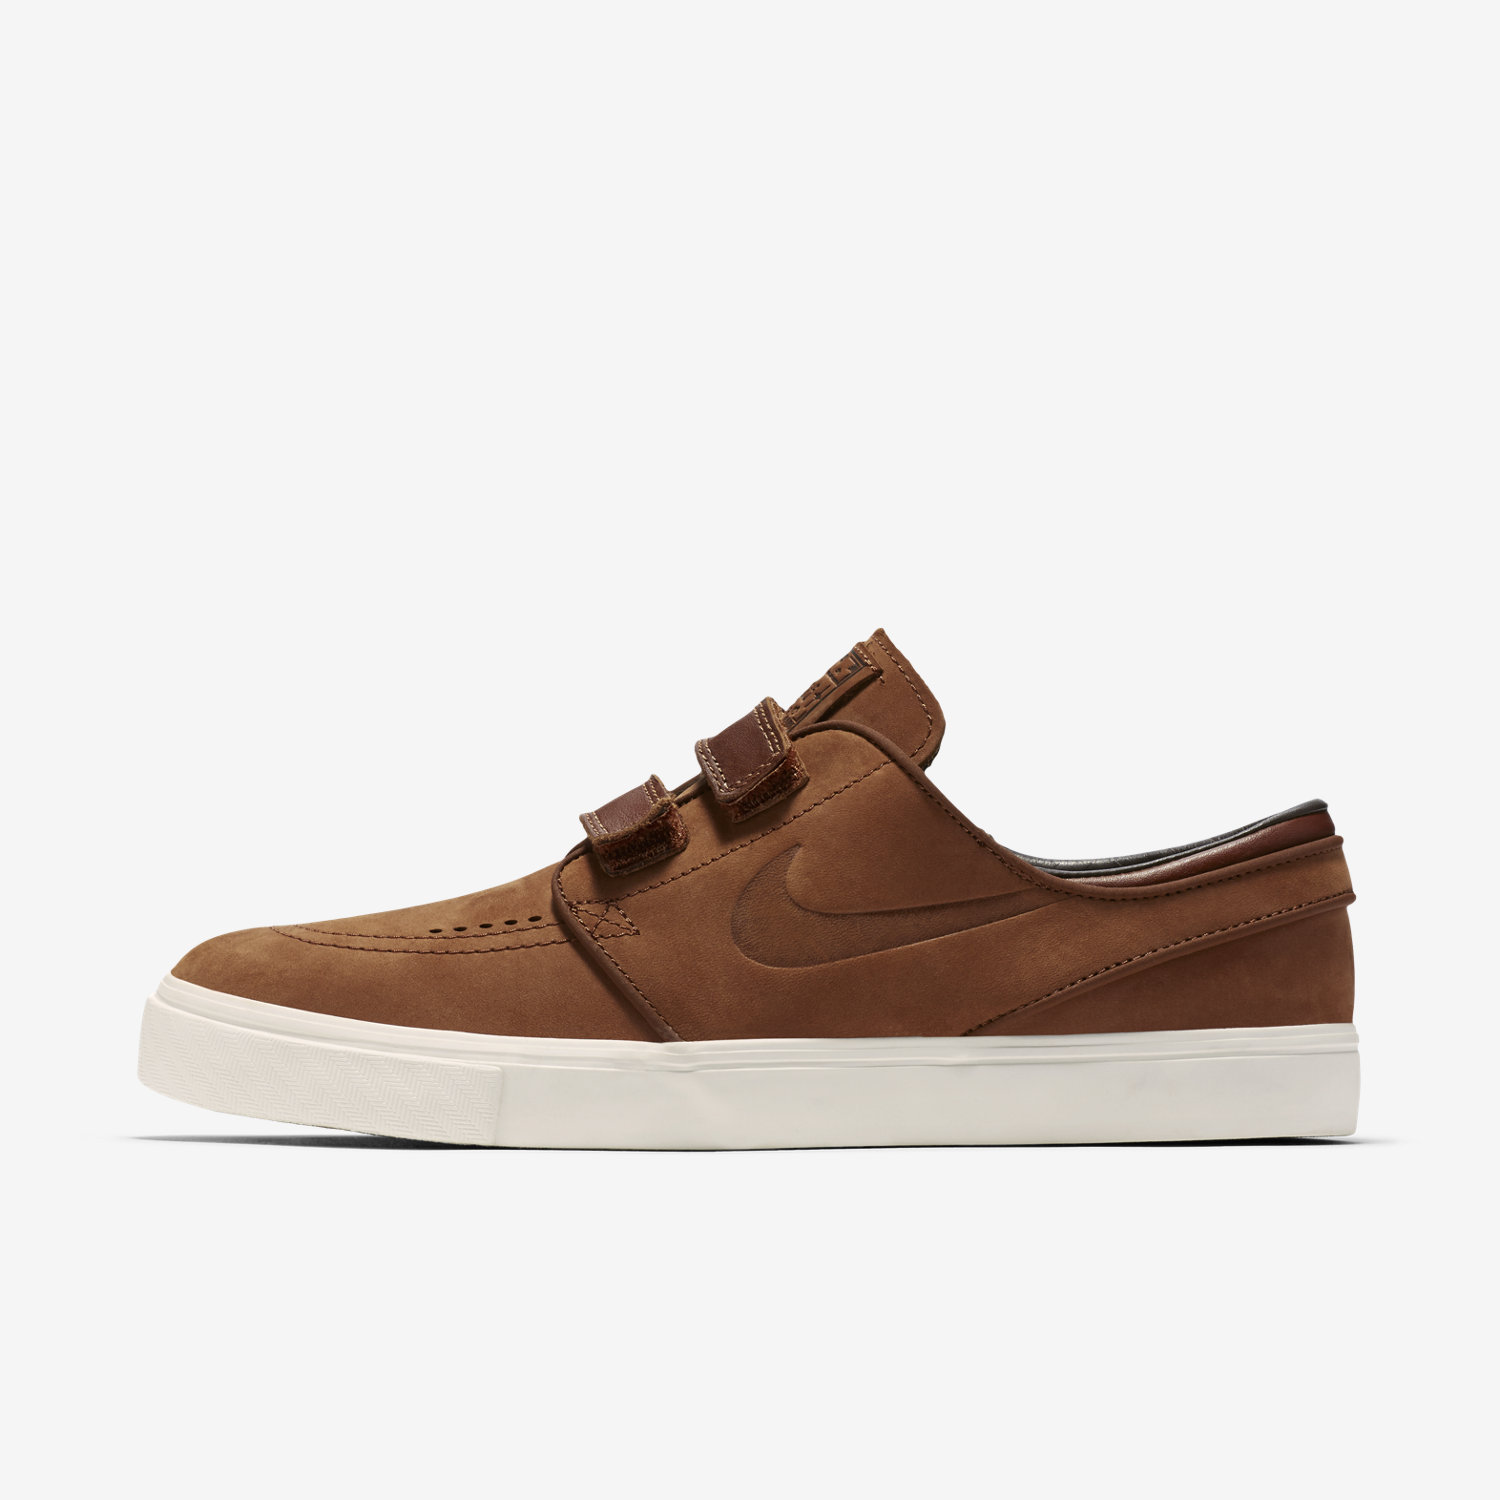 Skate shoes types - Next